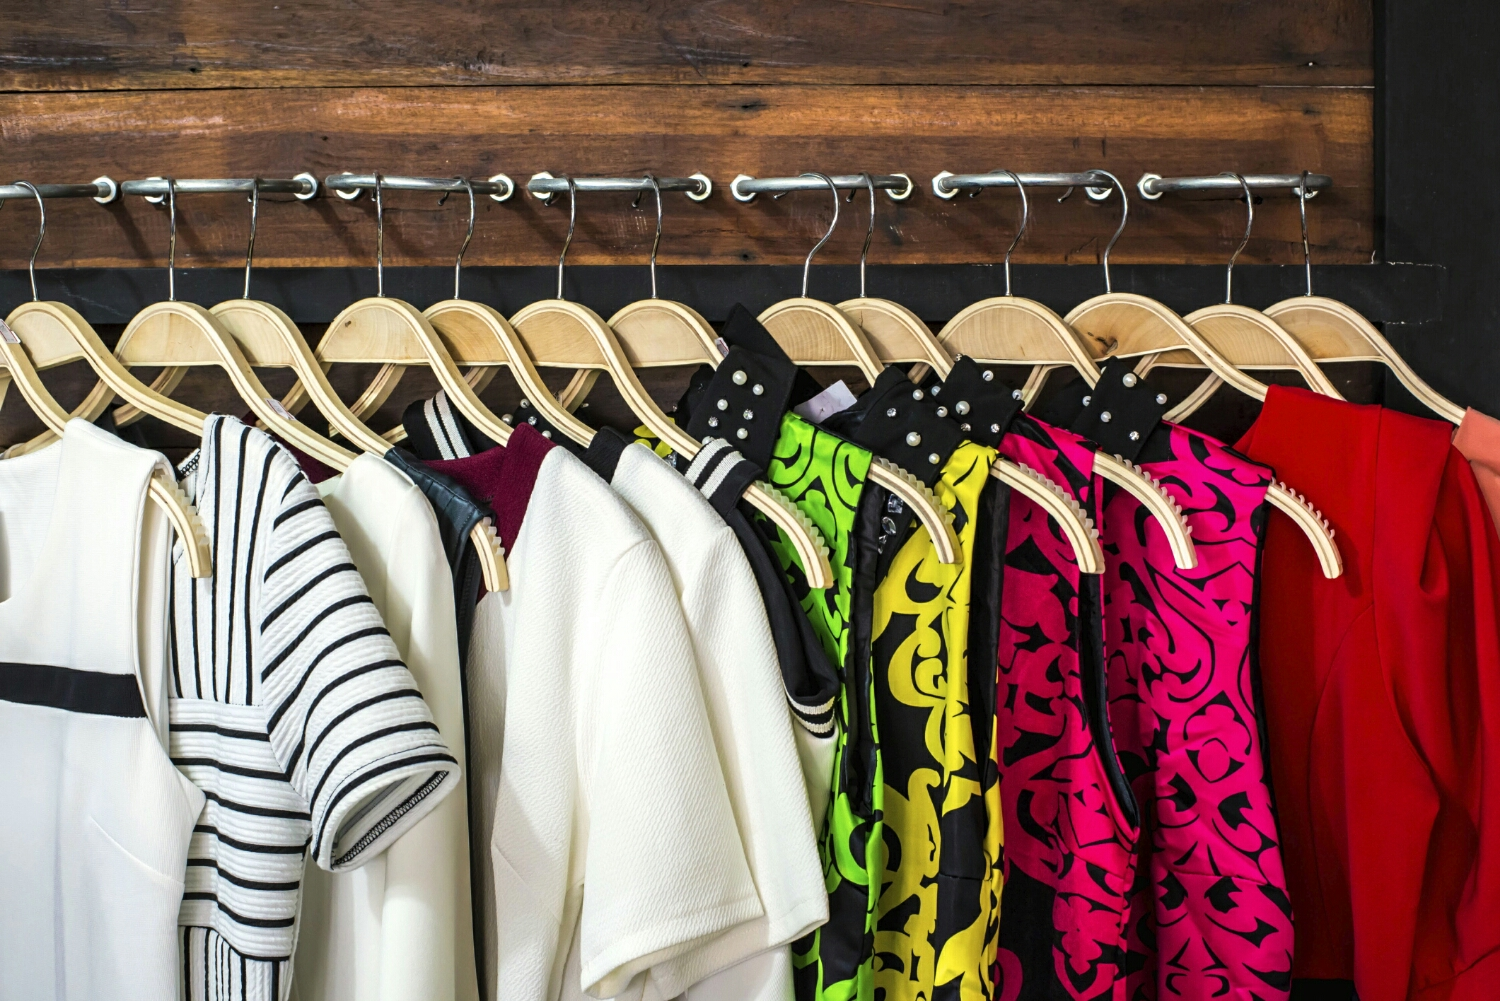 pleahttp://www.forbes.com/sites/learnvest/2014/04/23/simple-steps-to-a-clutter-free-closet